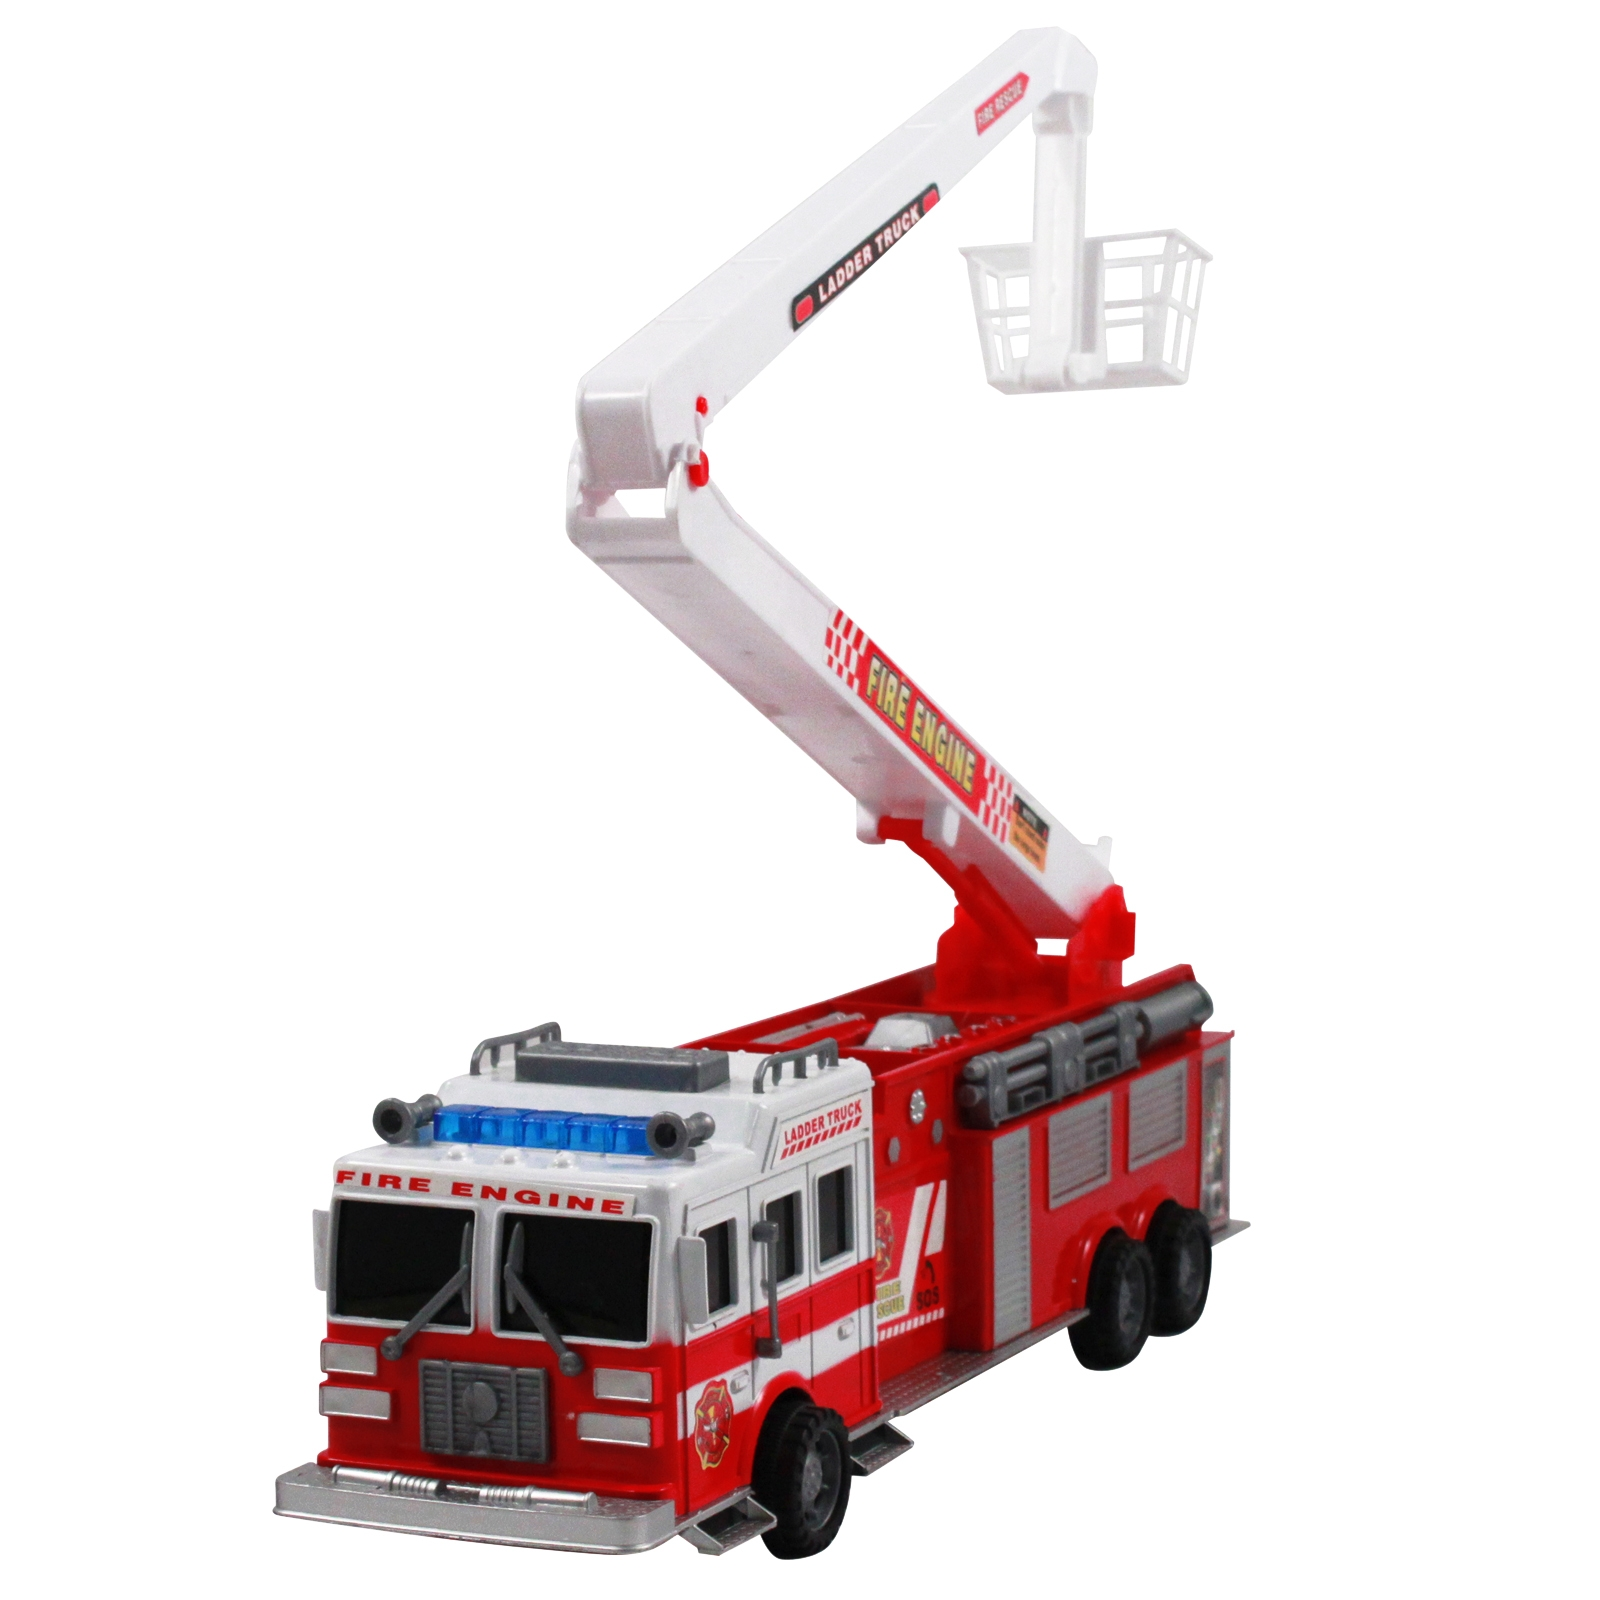 "Friction Power Fire Truck 17"" Firefighter Rescue Engine Toy by KidPlay Products"